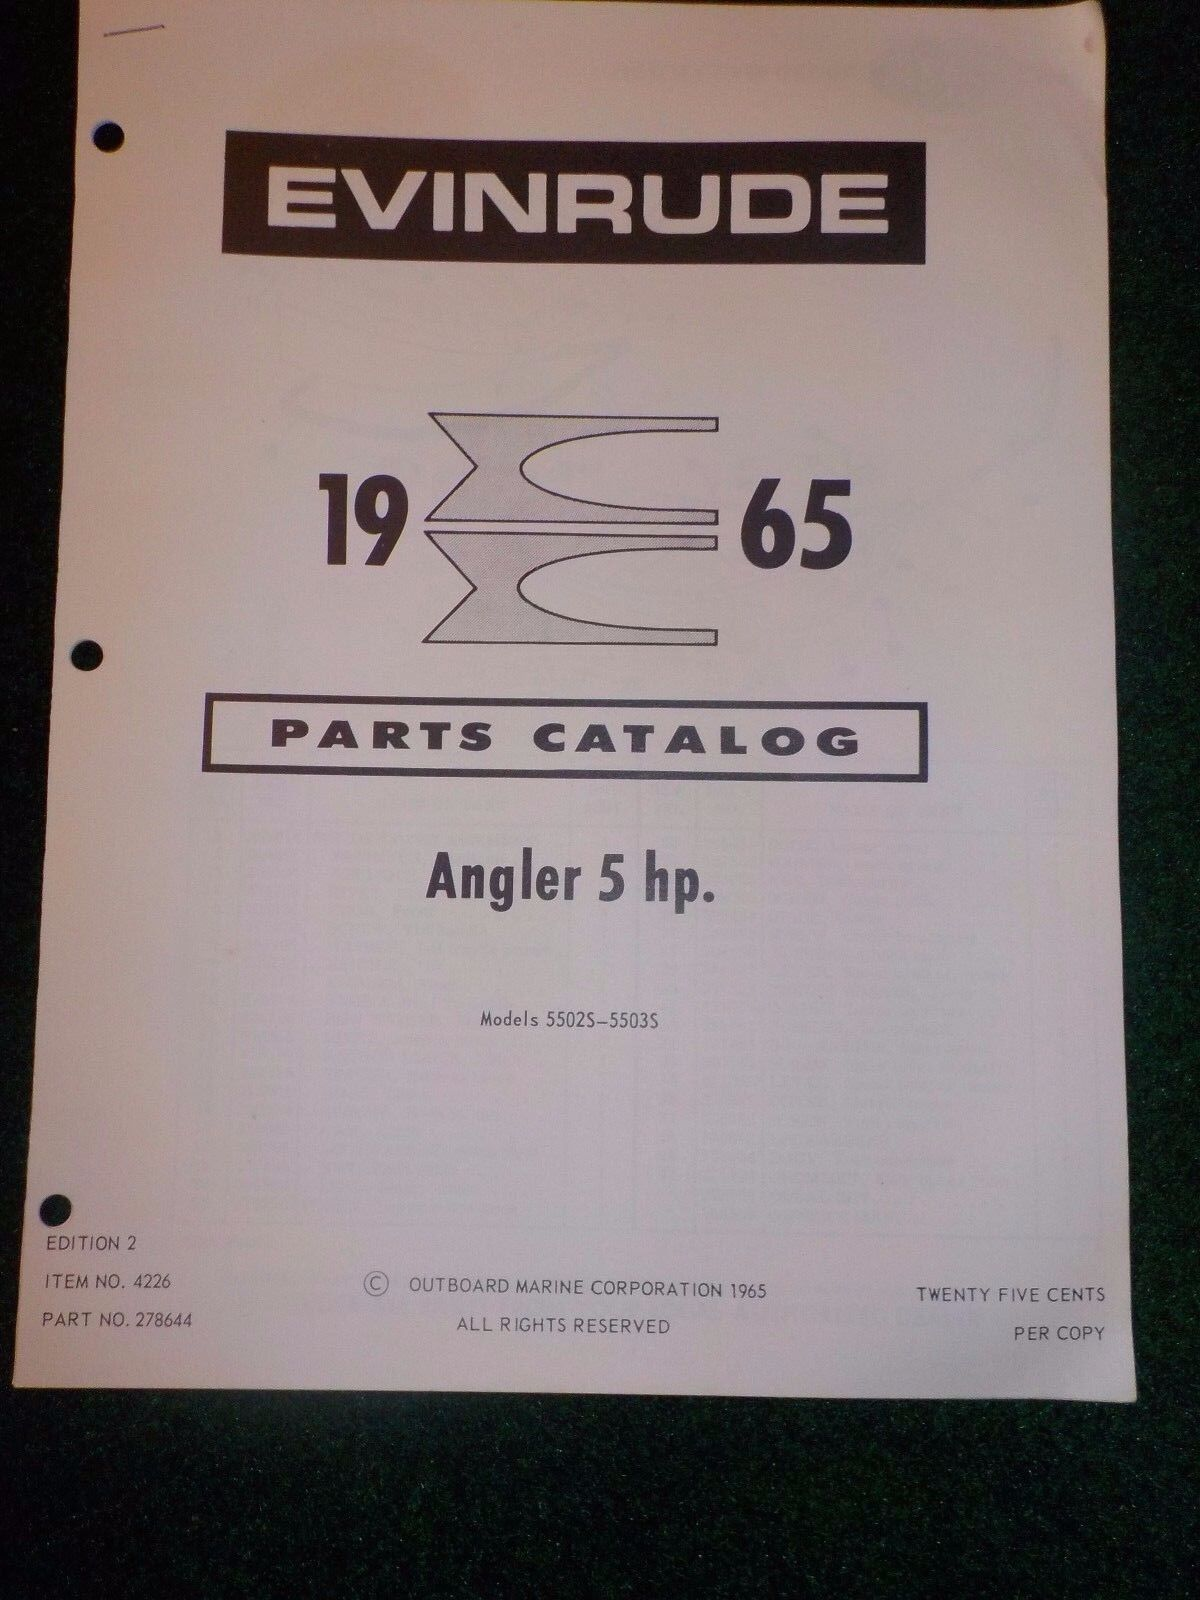 1965 OMC Evinrude Outboard Parts Catalog Manual 5 HP Angler 5502S-5303S  DEALER 1 of 3 See More